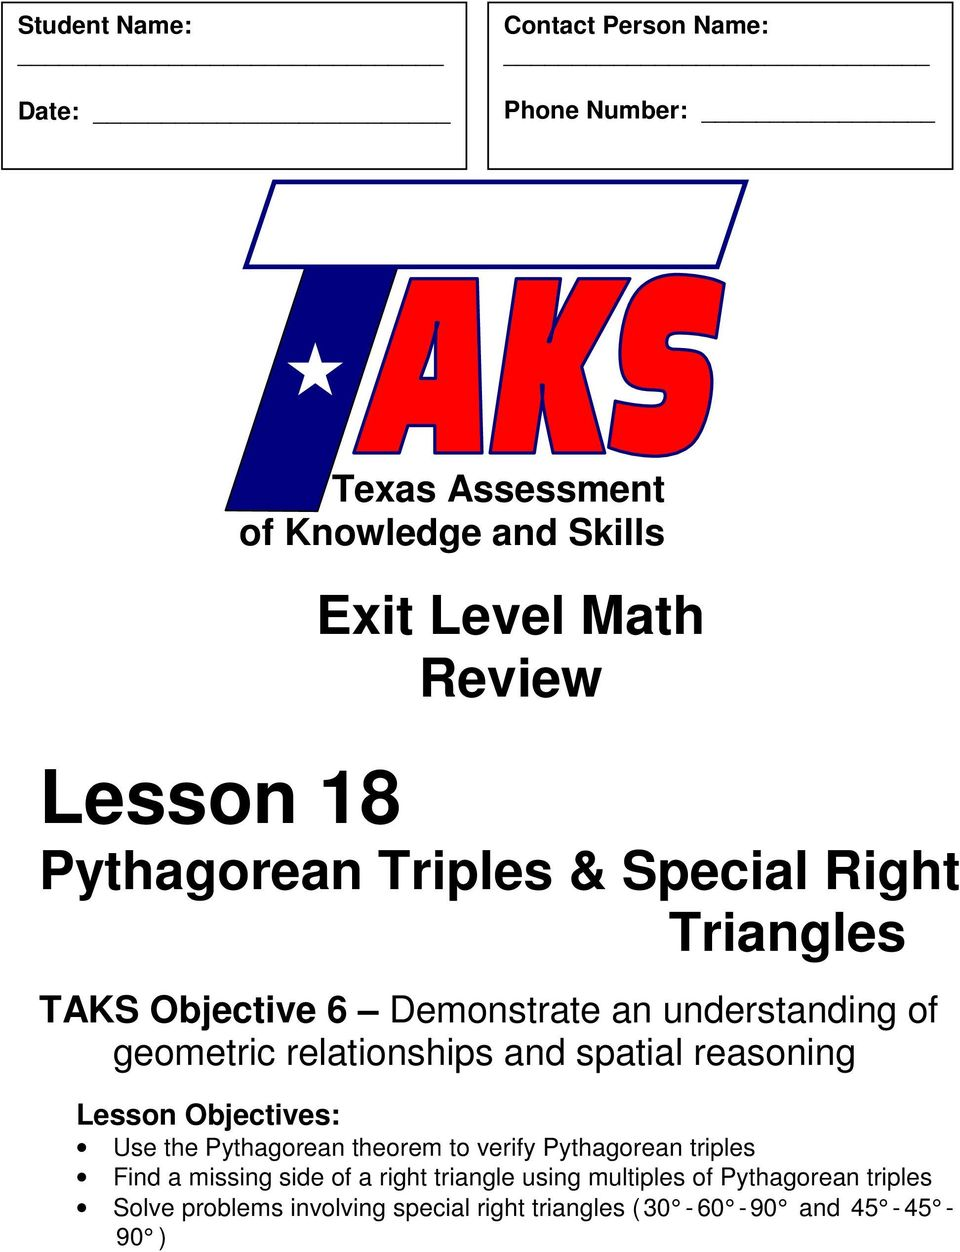 and spatial reasoning Lesson Objectives: Use the Pythagorean theorem to verify Pythagorean triples Find a missing side of a